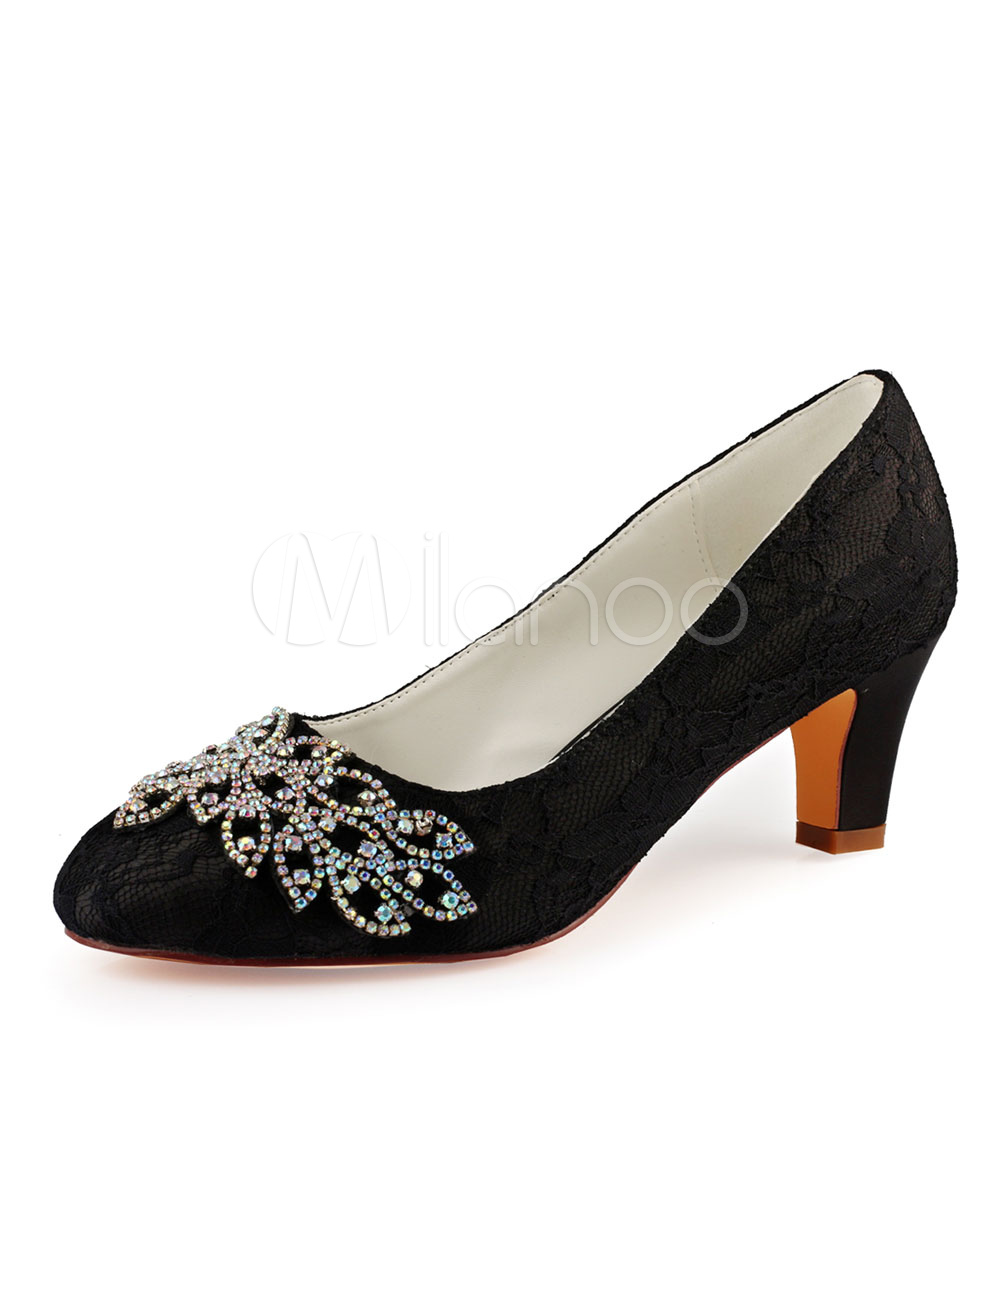 05aaa66654ae3 ... Lace Mother Of Bride Shoes Black Round Toe Rhinestones Chunky Heel  Wedding Guest Shoes-No. 1. 40%OFF. Color:Black